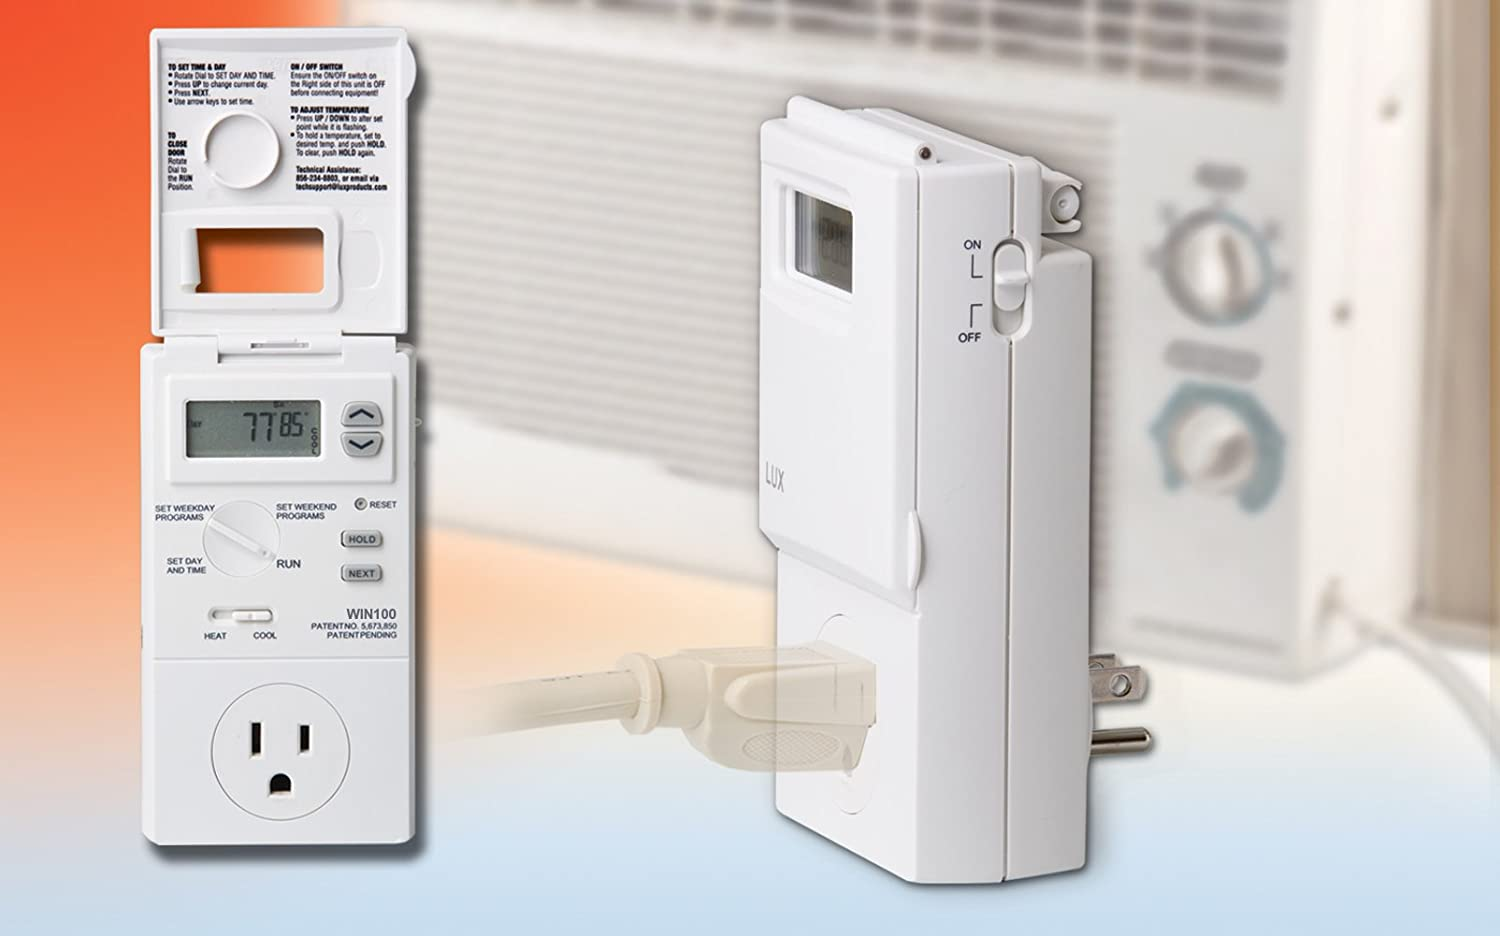 #C02D0C Lux WIN100 Heating & Cooling Programmable Outlet  Highest Rated 12966 Lux Air Conditioning img with 1500x936 px on helpvideos.info - Air Conditioners, Air Coolers and more